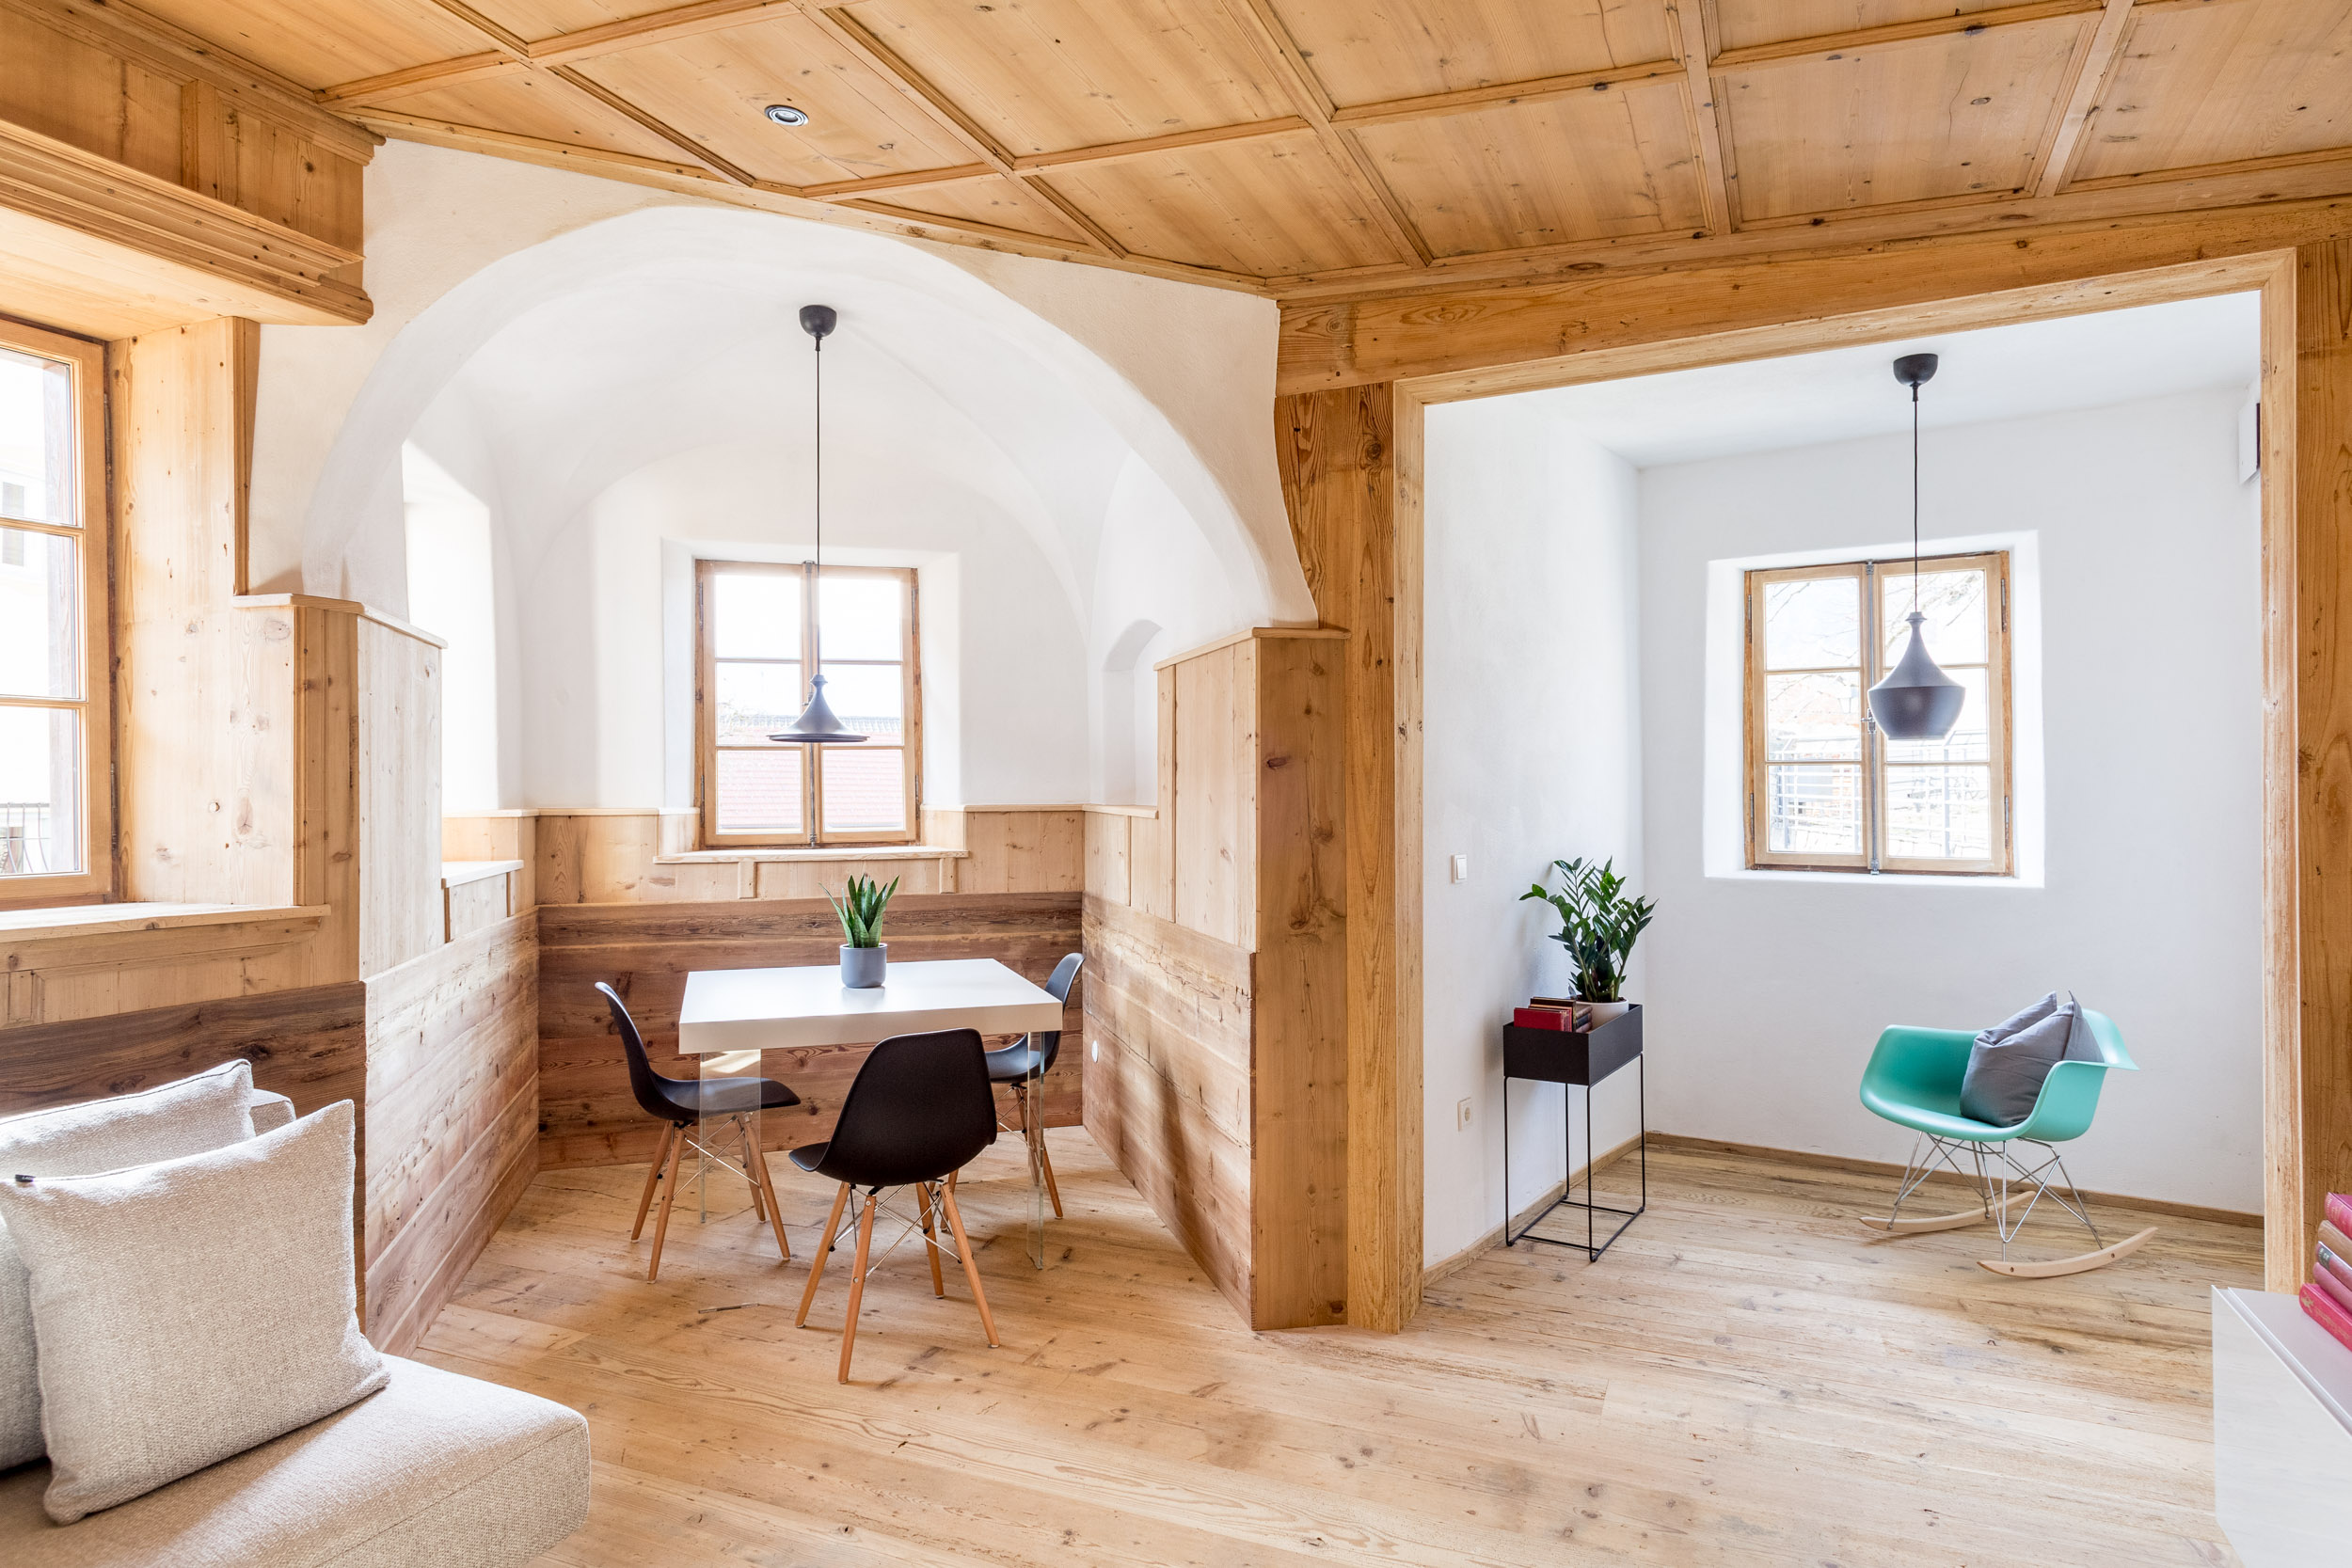 Apartment 1 - Charming design apartment with a picturesque living room and antique wood-panelled interiors.